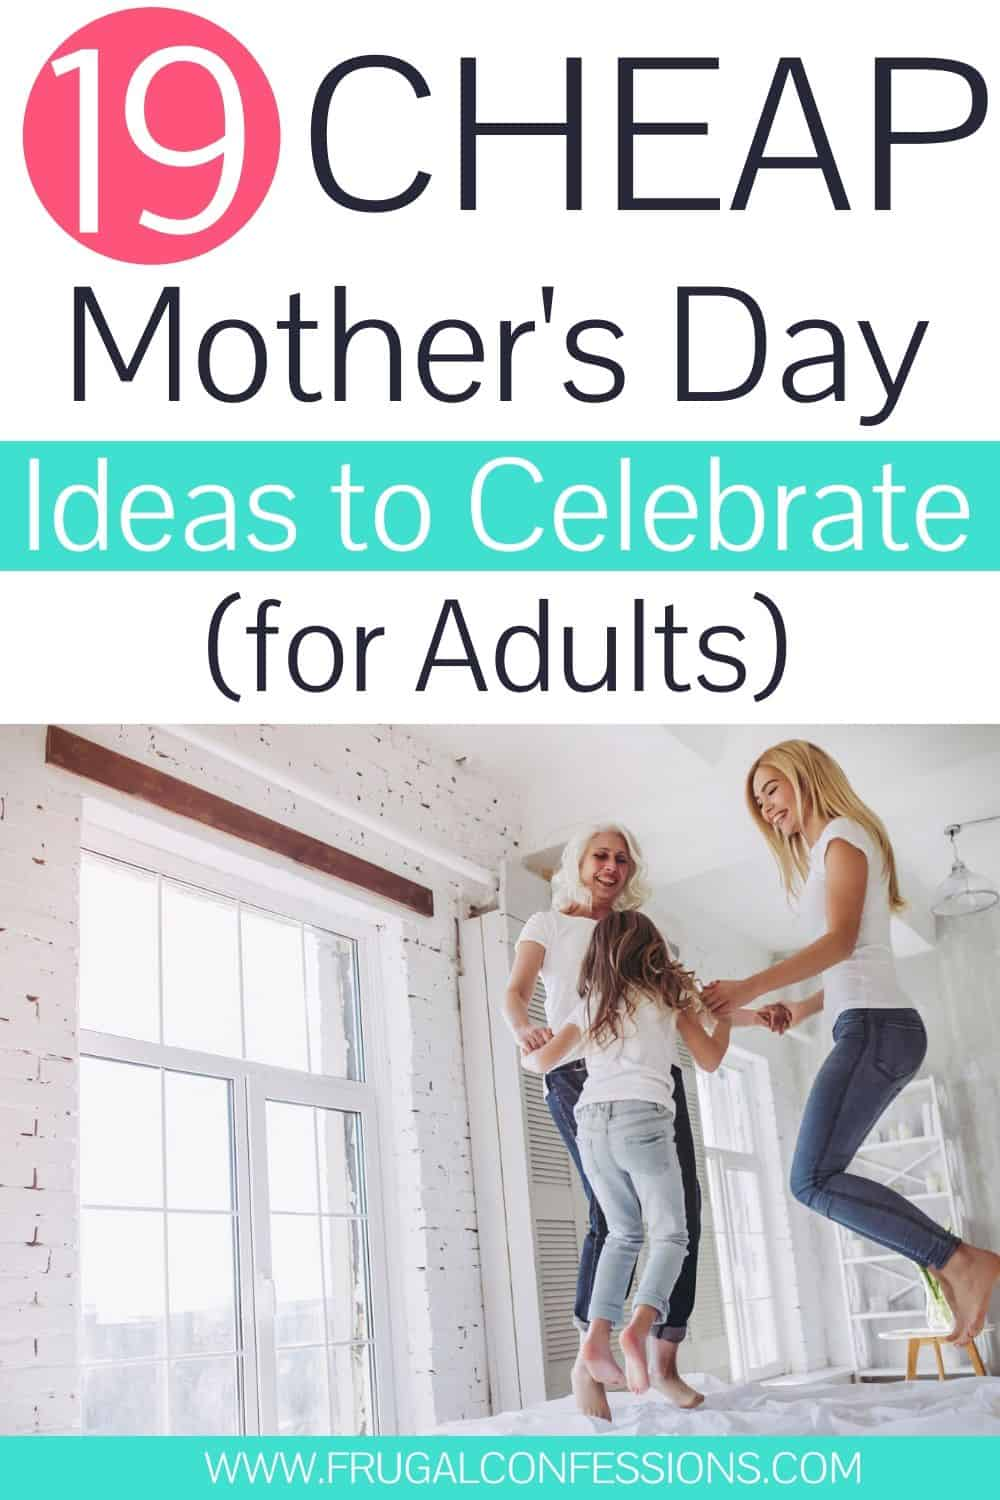 "mother, daughter, and grandchild jumping on bed, text overlay ""19 cheap Mother's Day ideas to celebrate for adults"""